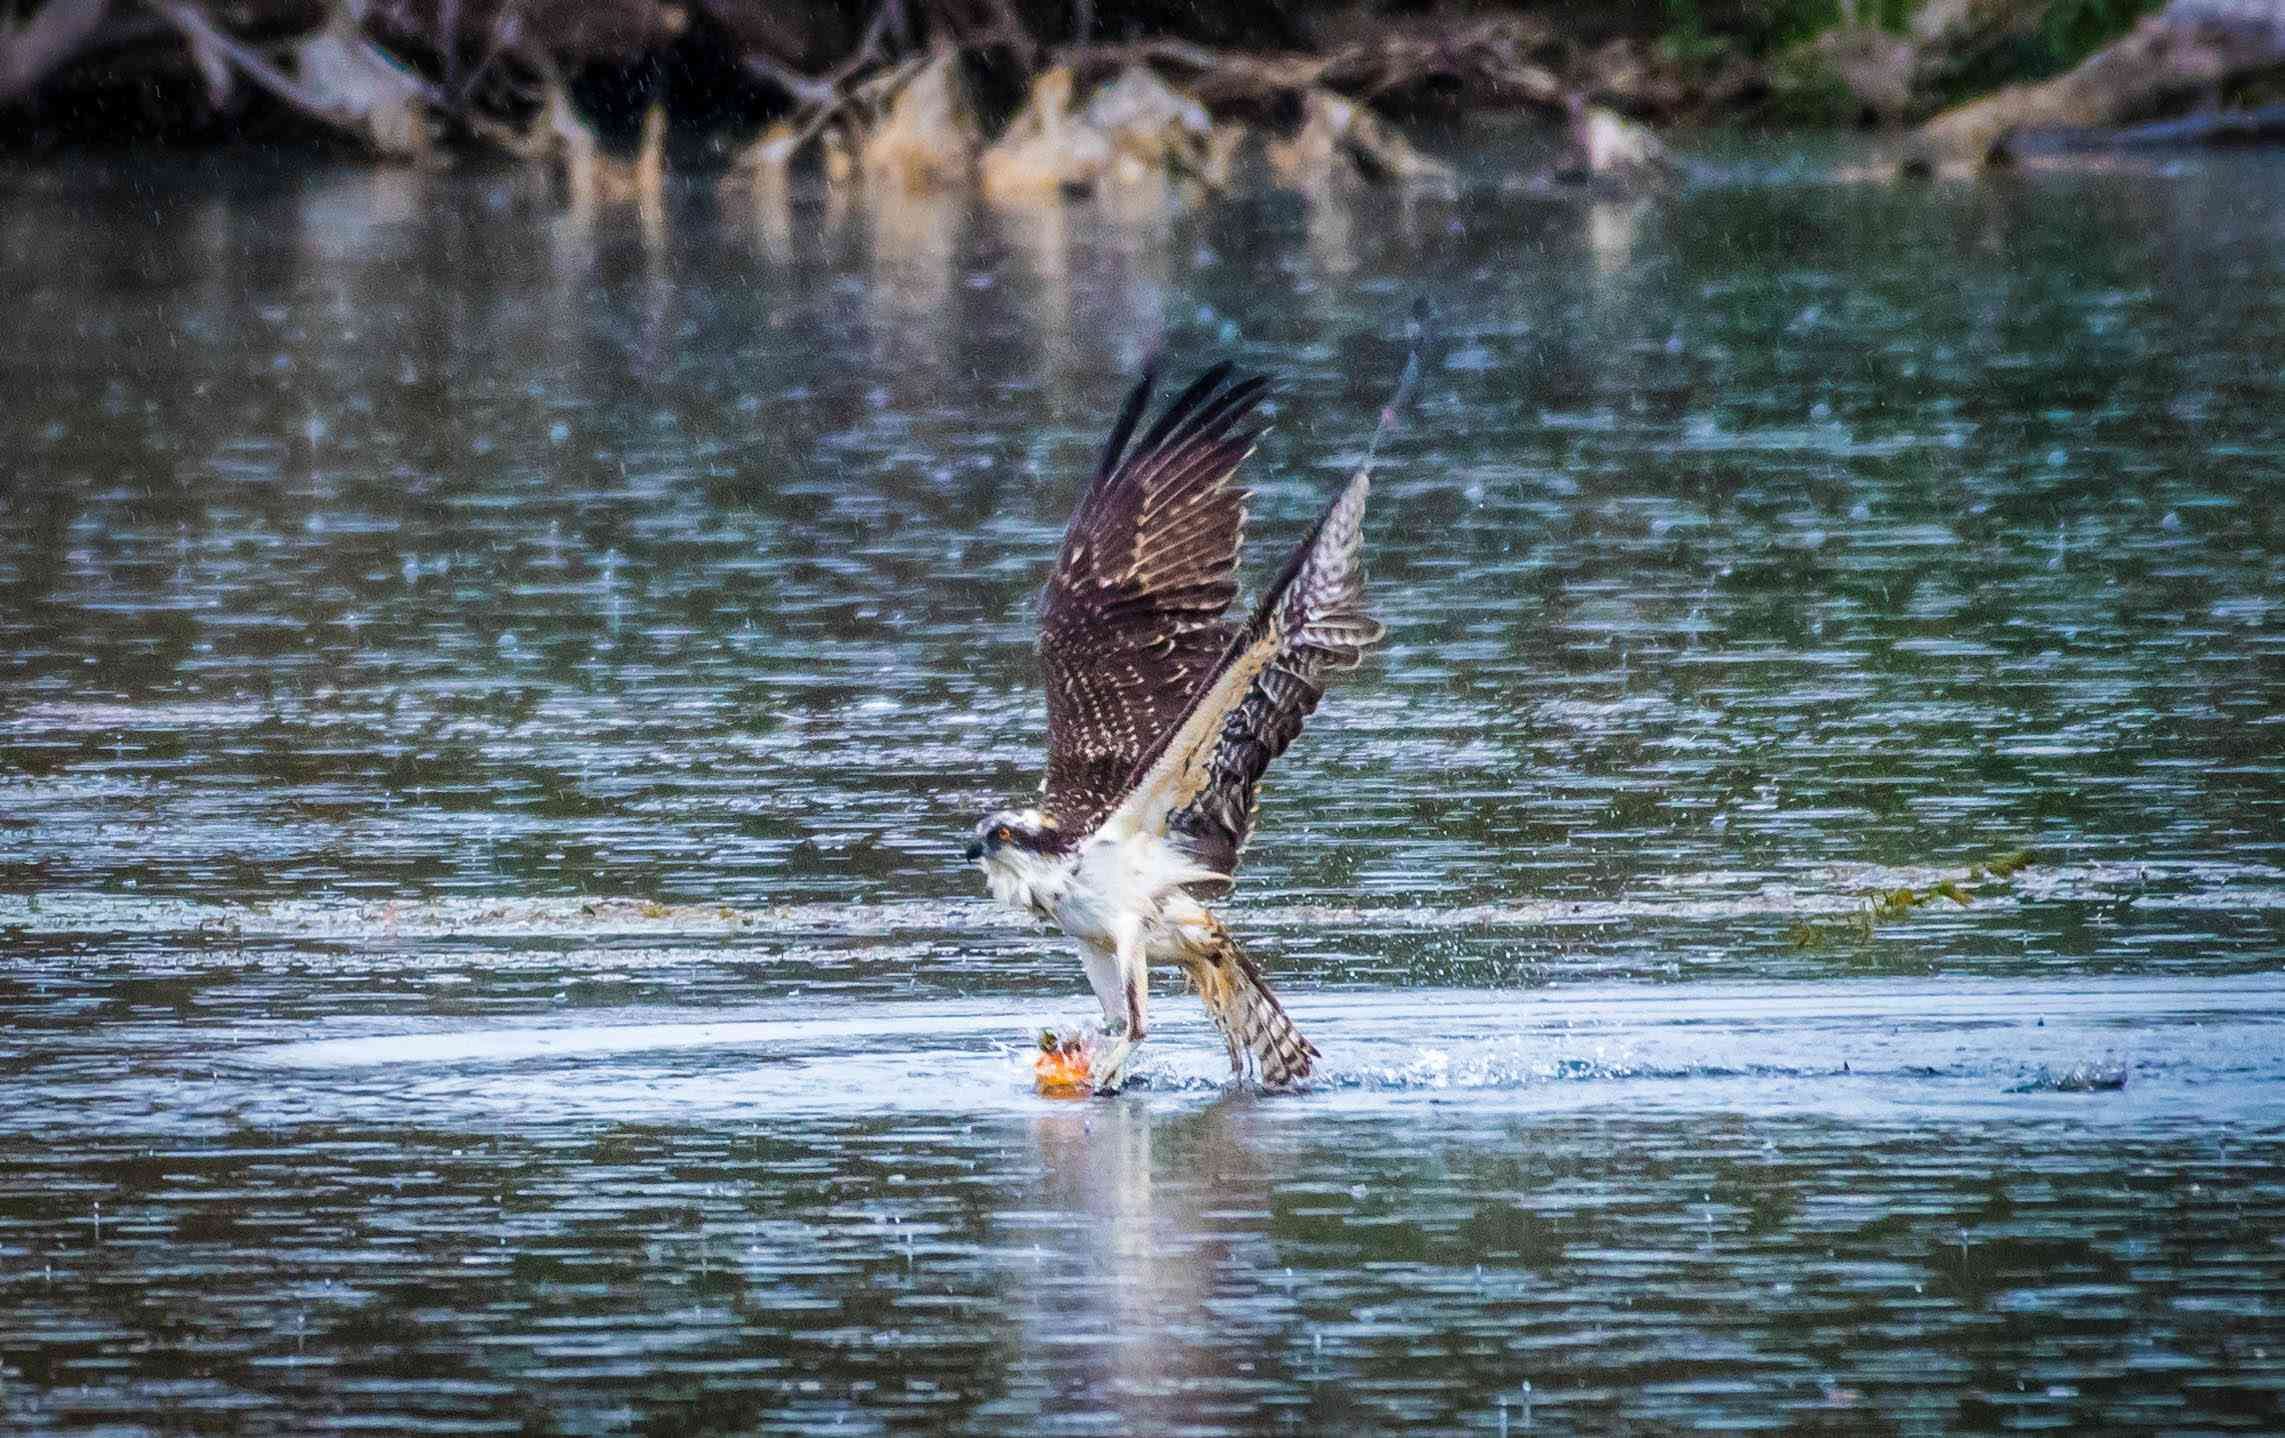 osprey taking off after landing in water holding a fish